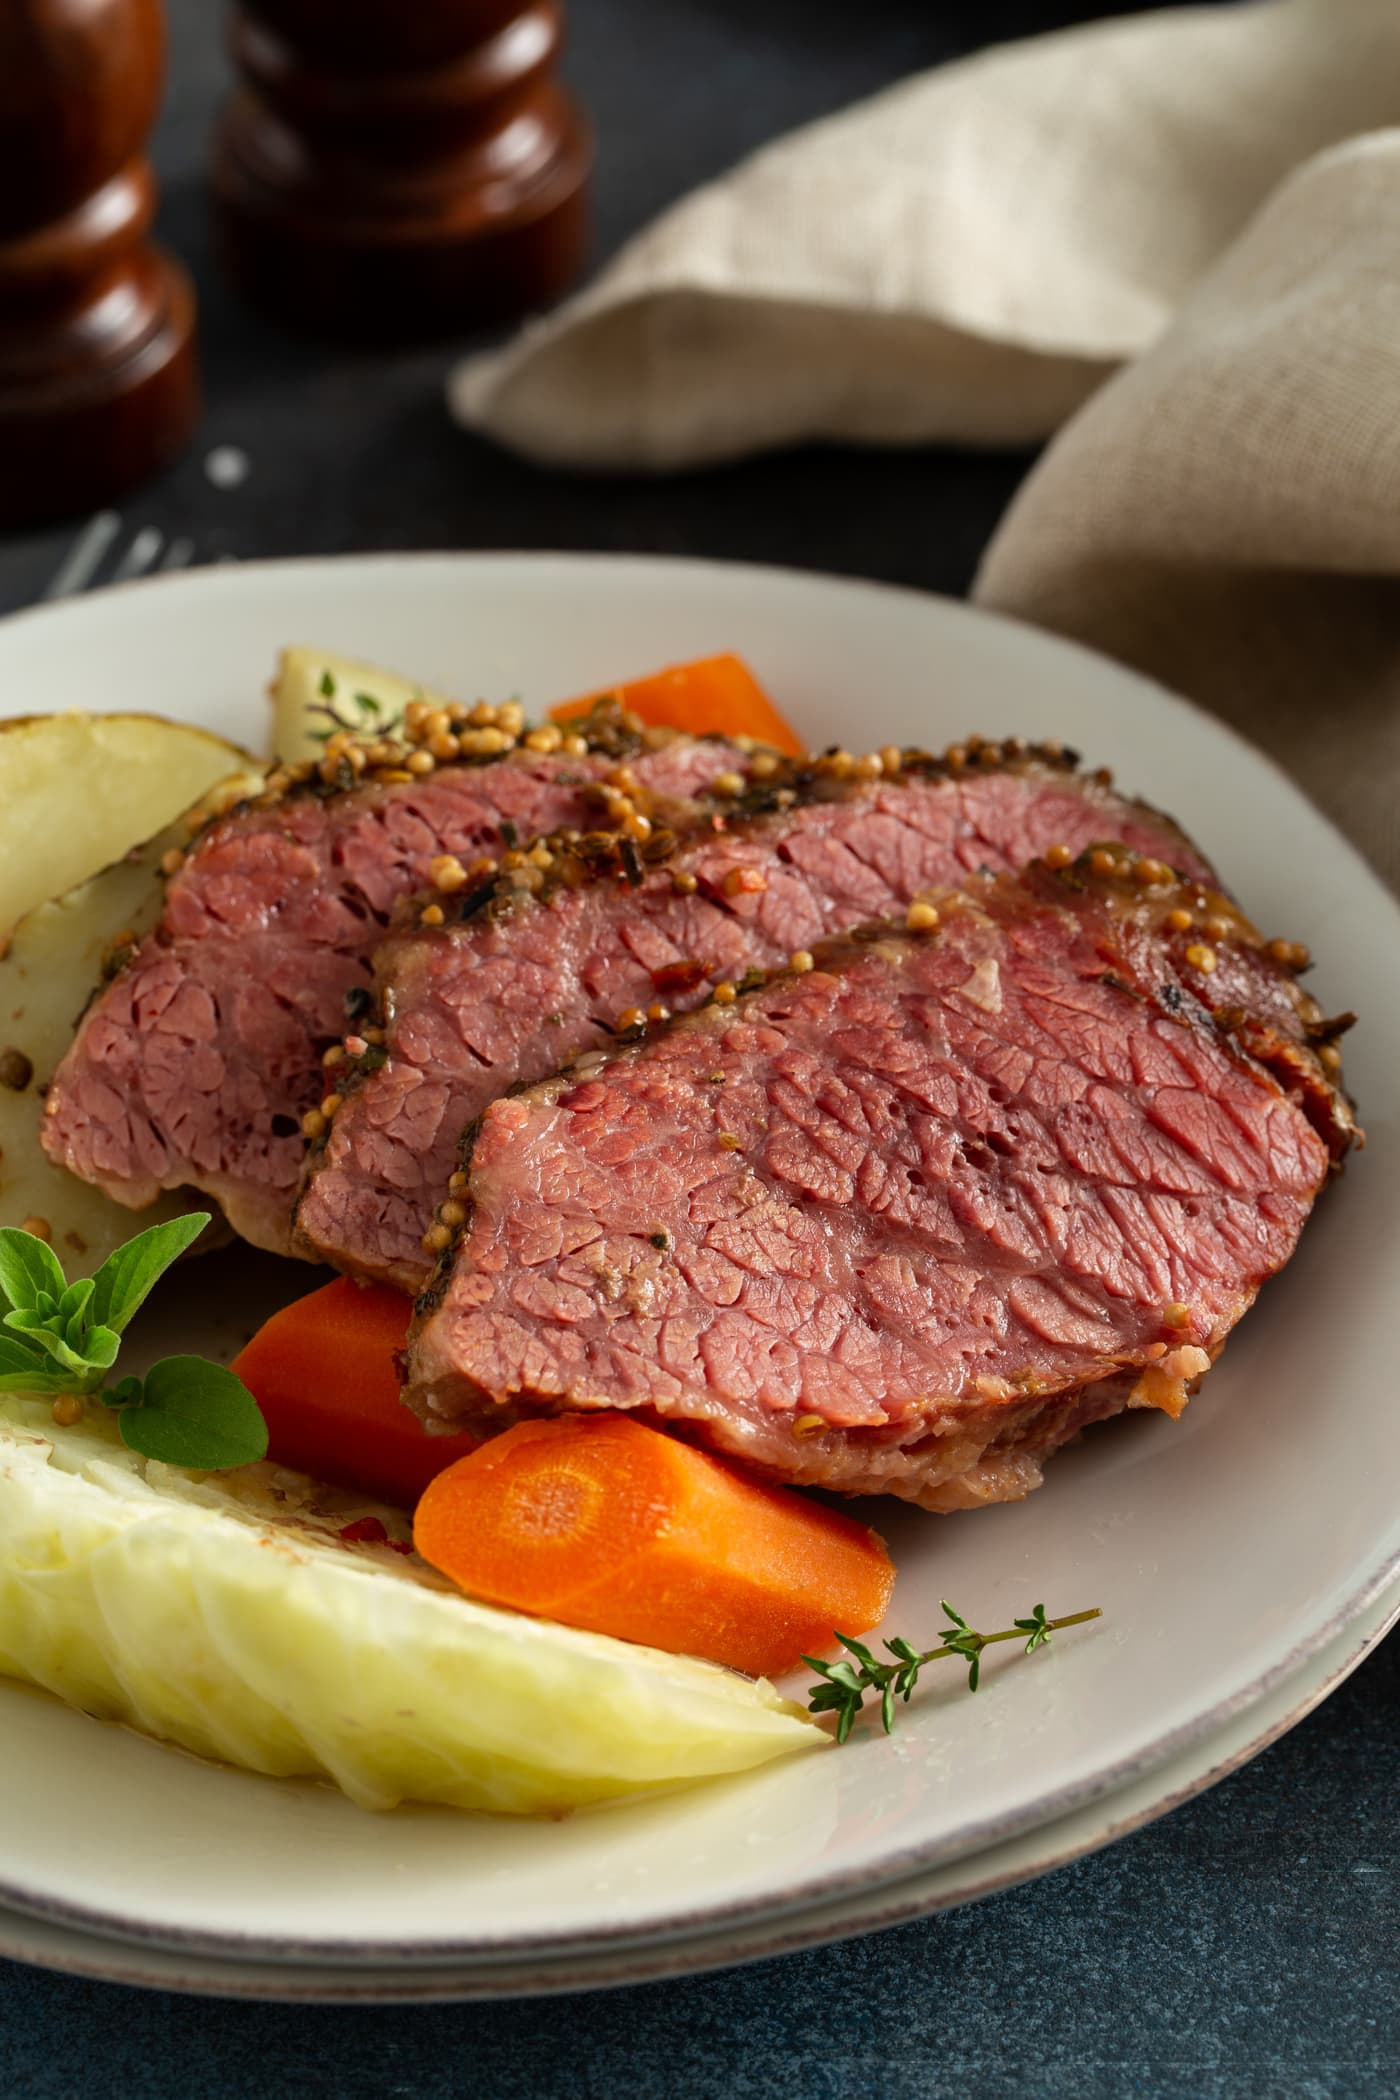 Three slices of corned beef next to carrots and potatoes and cabbage, all on a white serving plate. There are sprigs of green herbs on top.